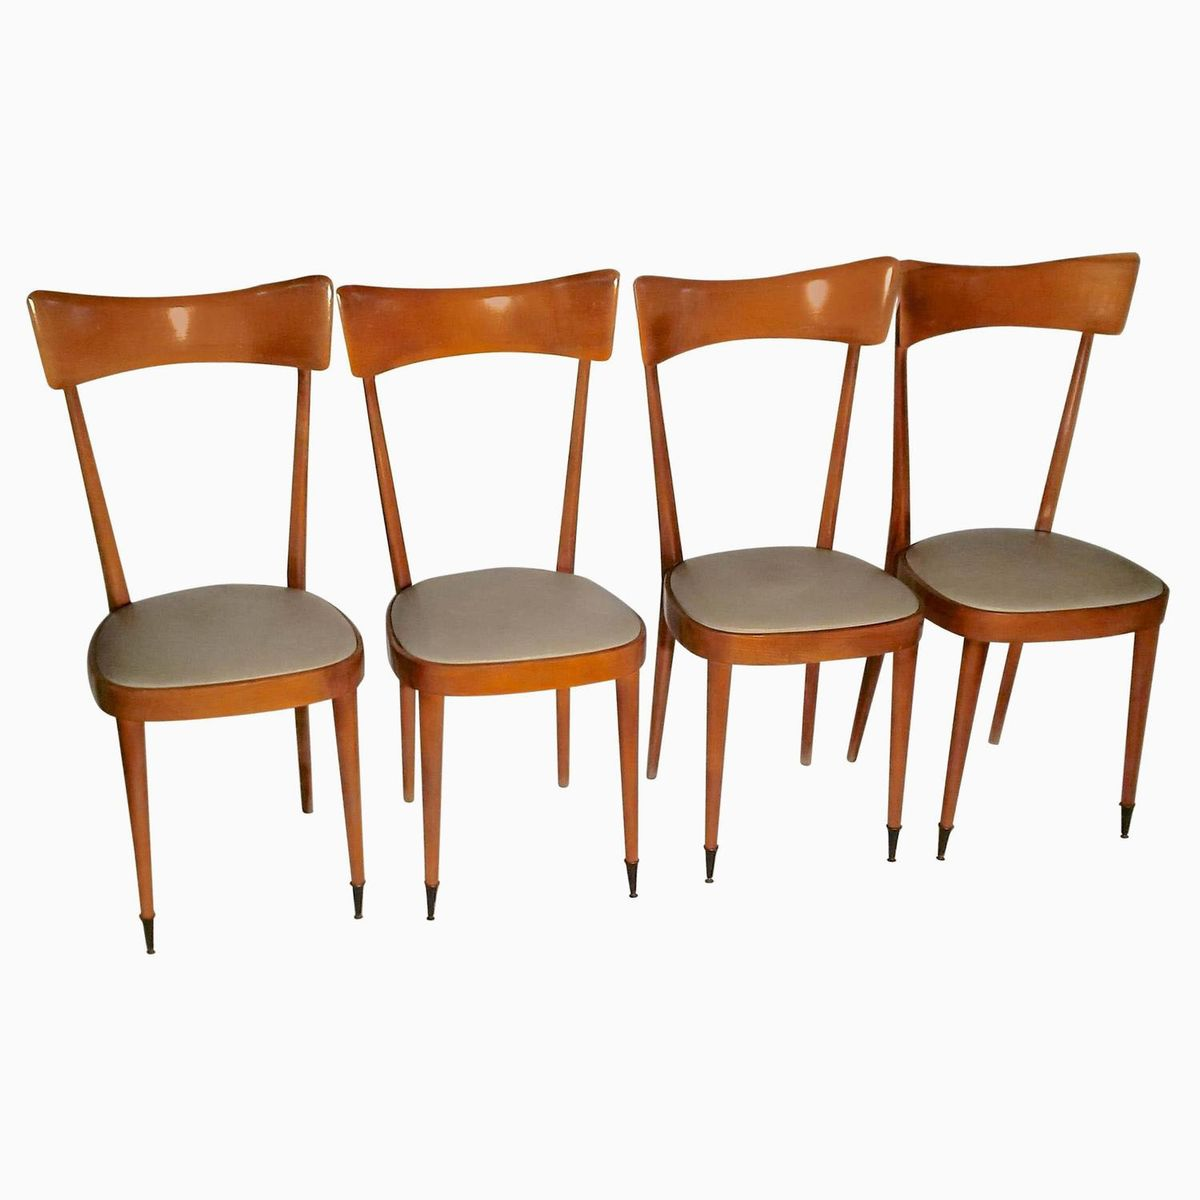 mid century italian dining chairs set of 4 for sale at pamono mid century italian dining chairs set of 4